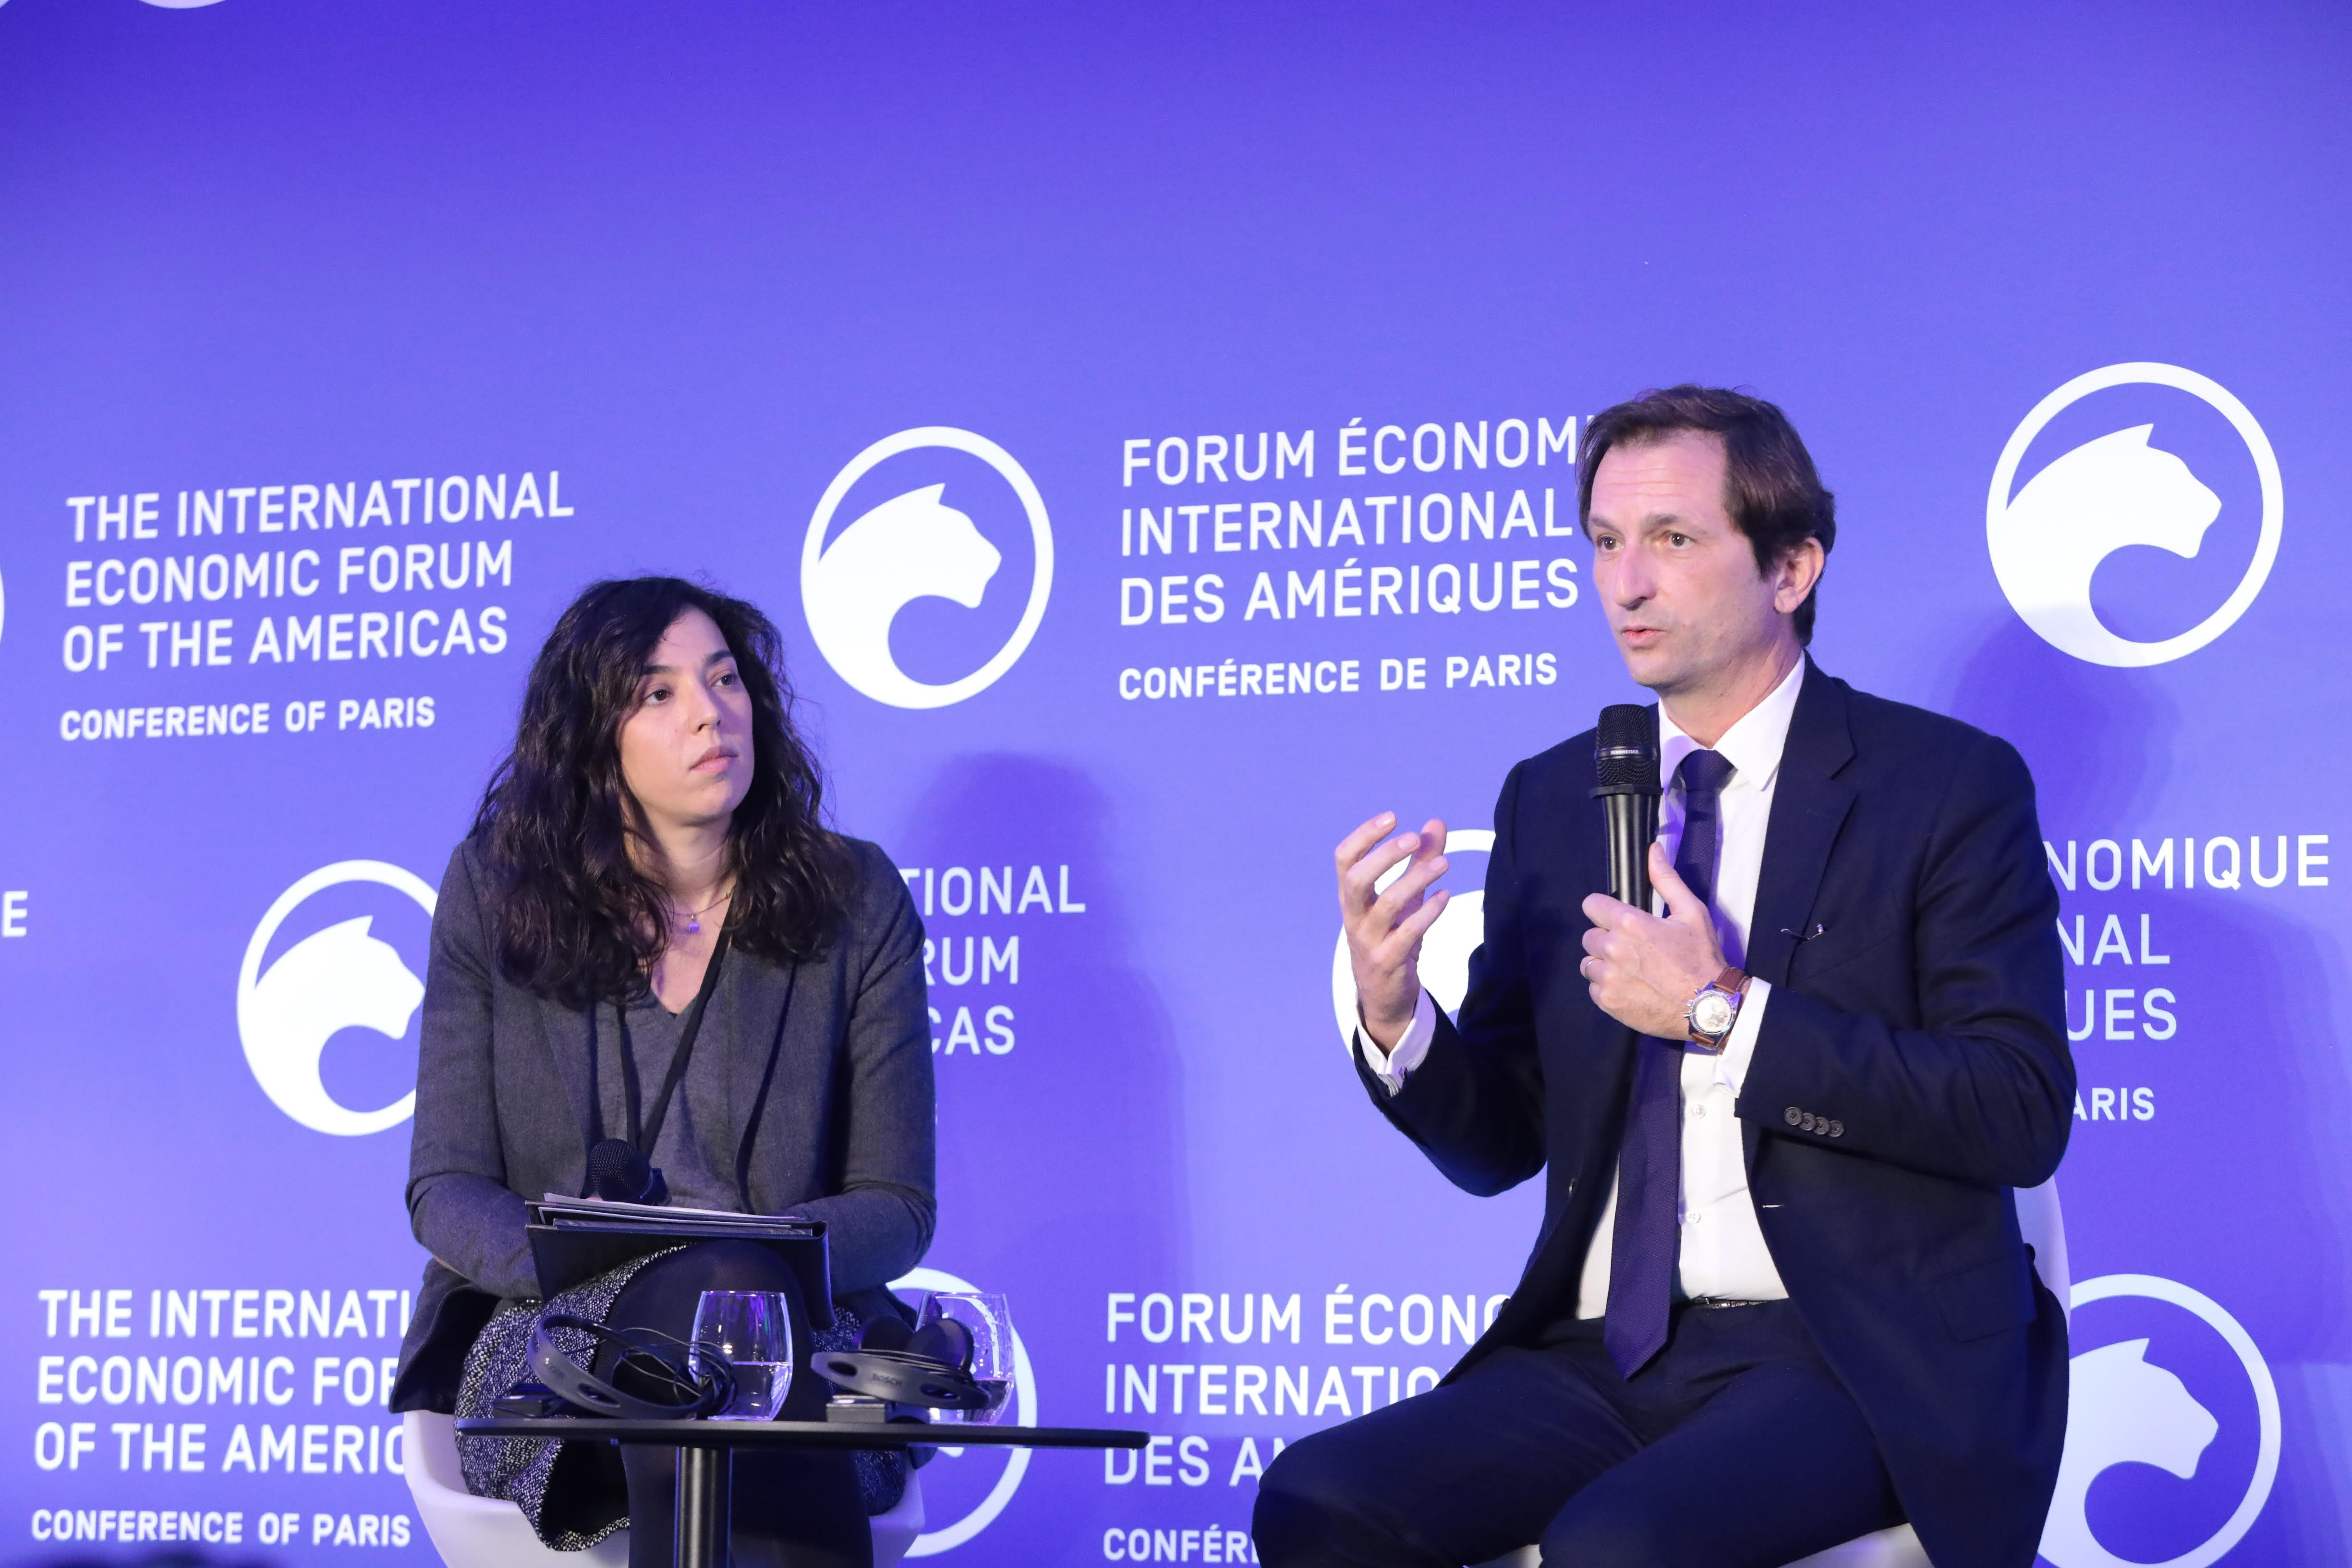 Géraldine Ang, Policy Analyst, Green Investment, Organisation for Economic Co-operation and Development